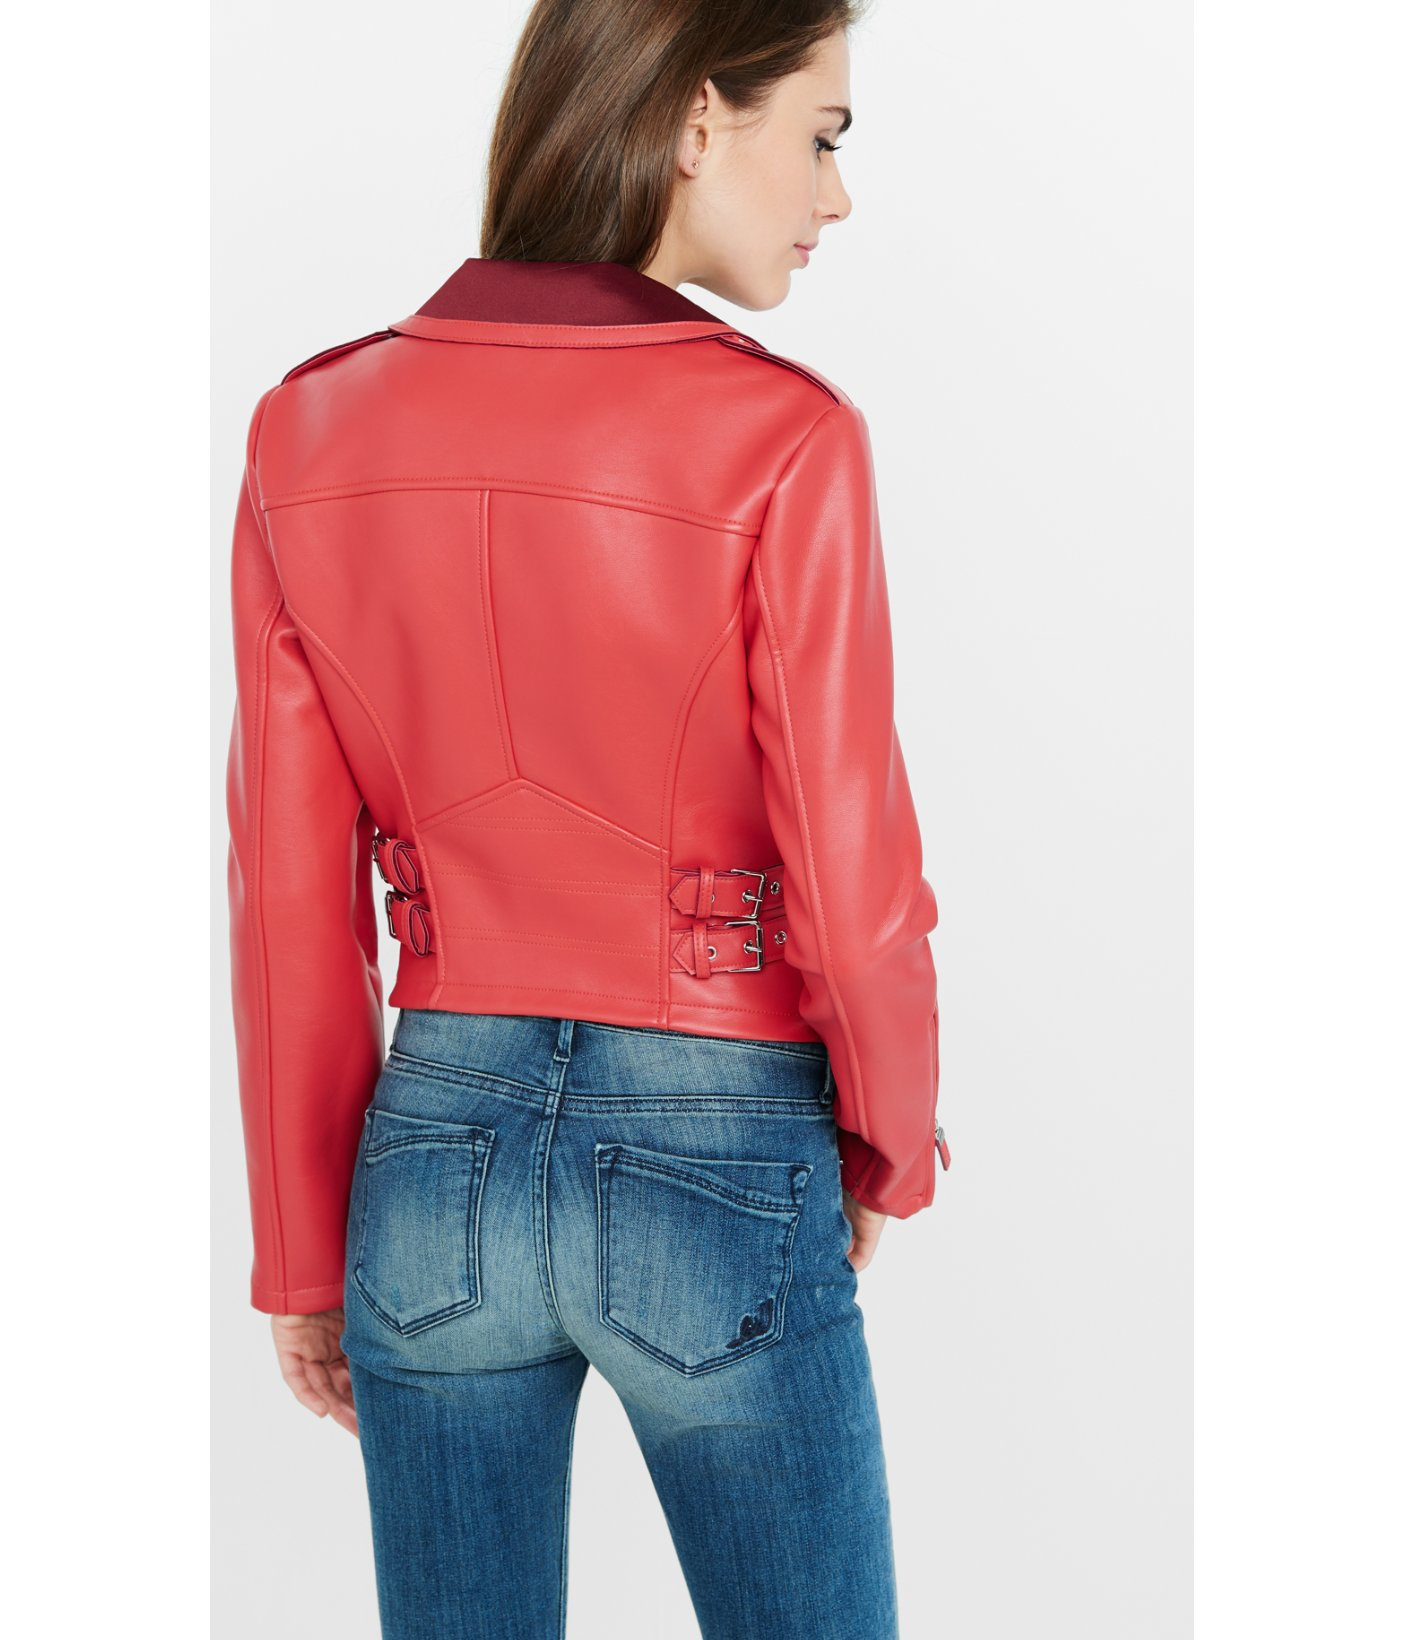 Lyst Express Red Color Block Minus The Leather Jacket In Red